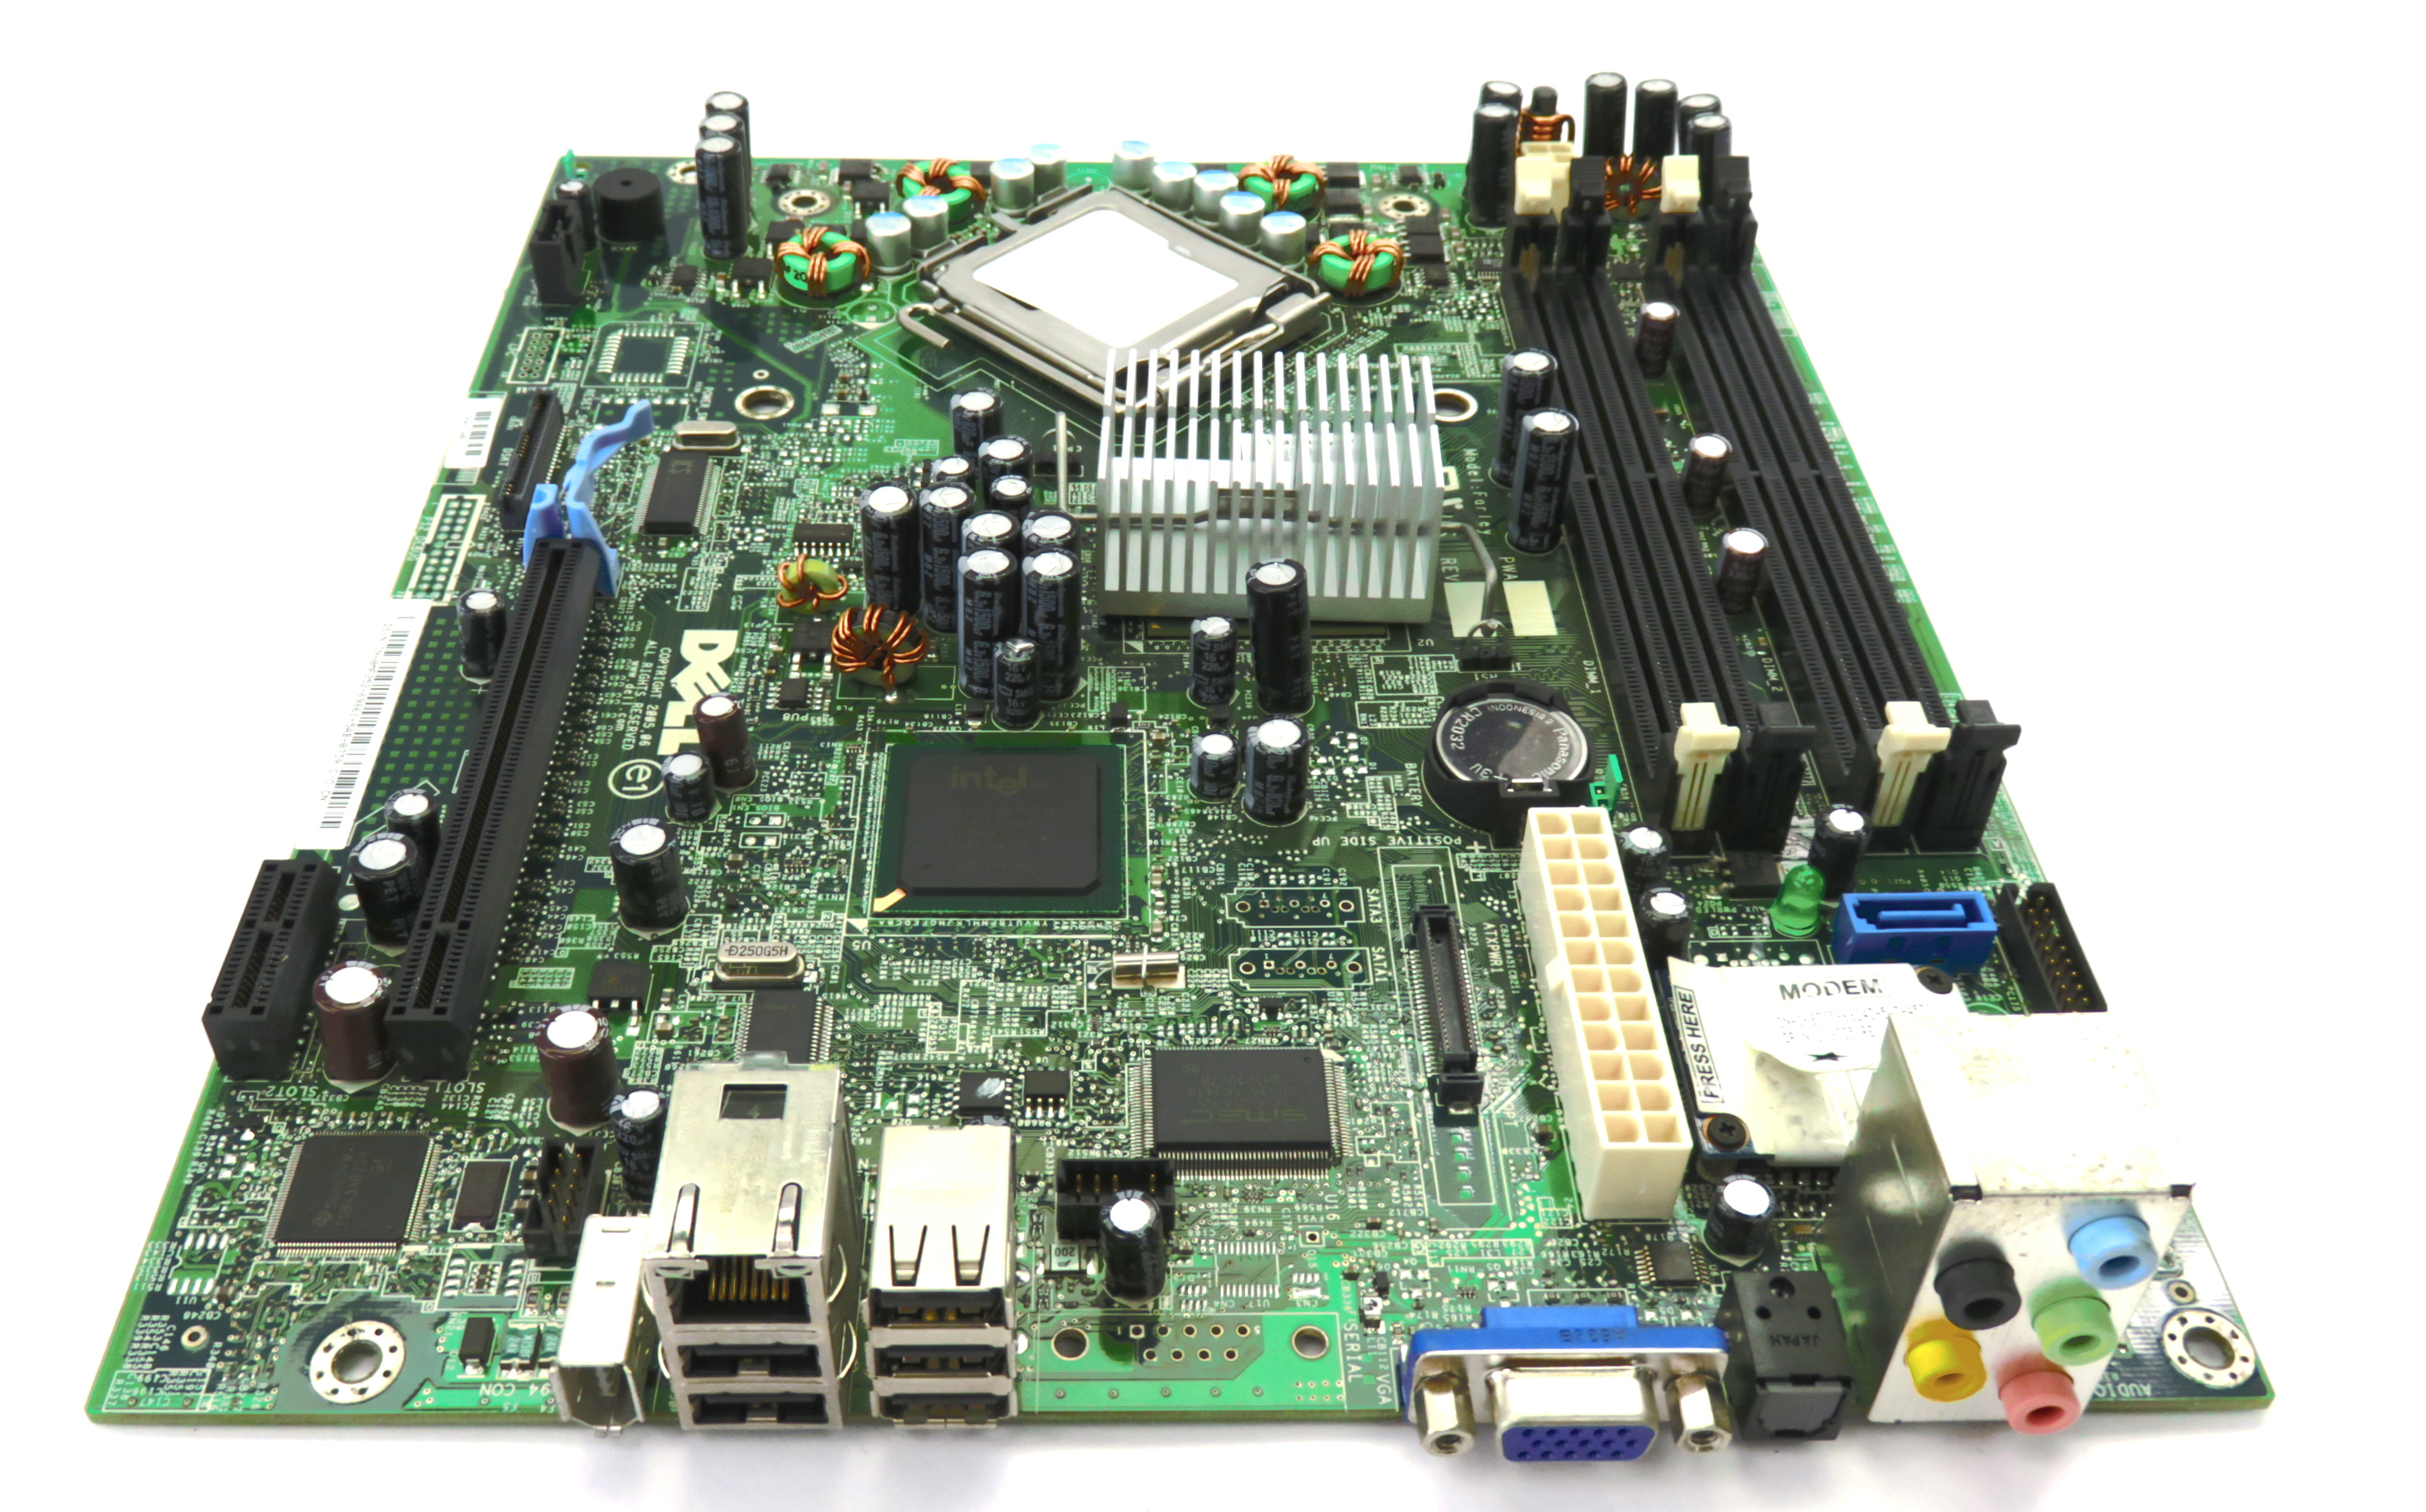 Dell MF252 Dimension 5150C Socket 775 Motherboard